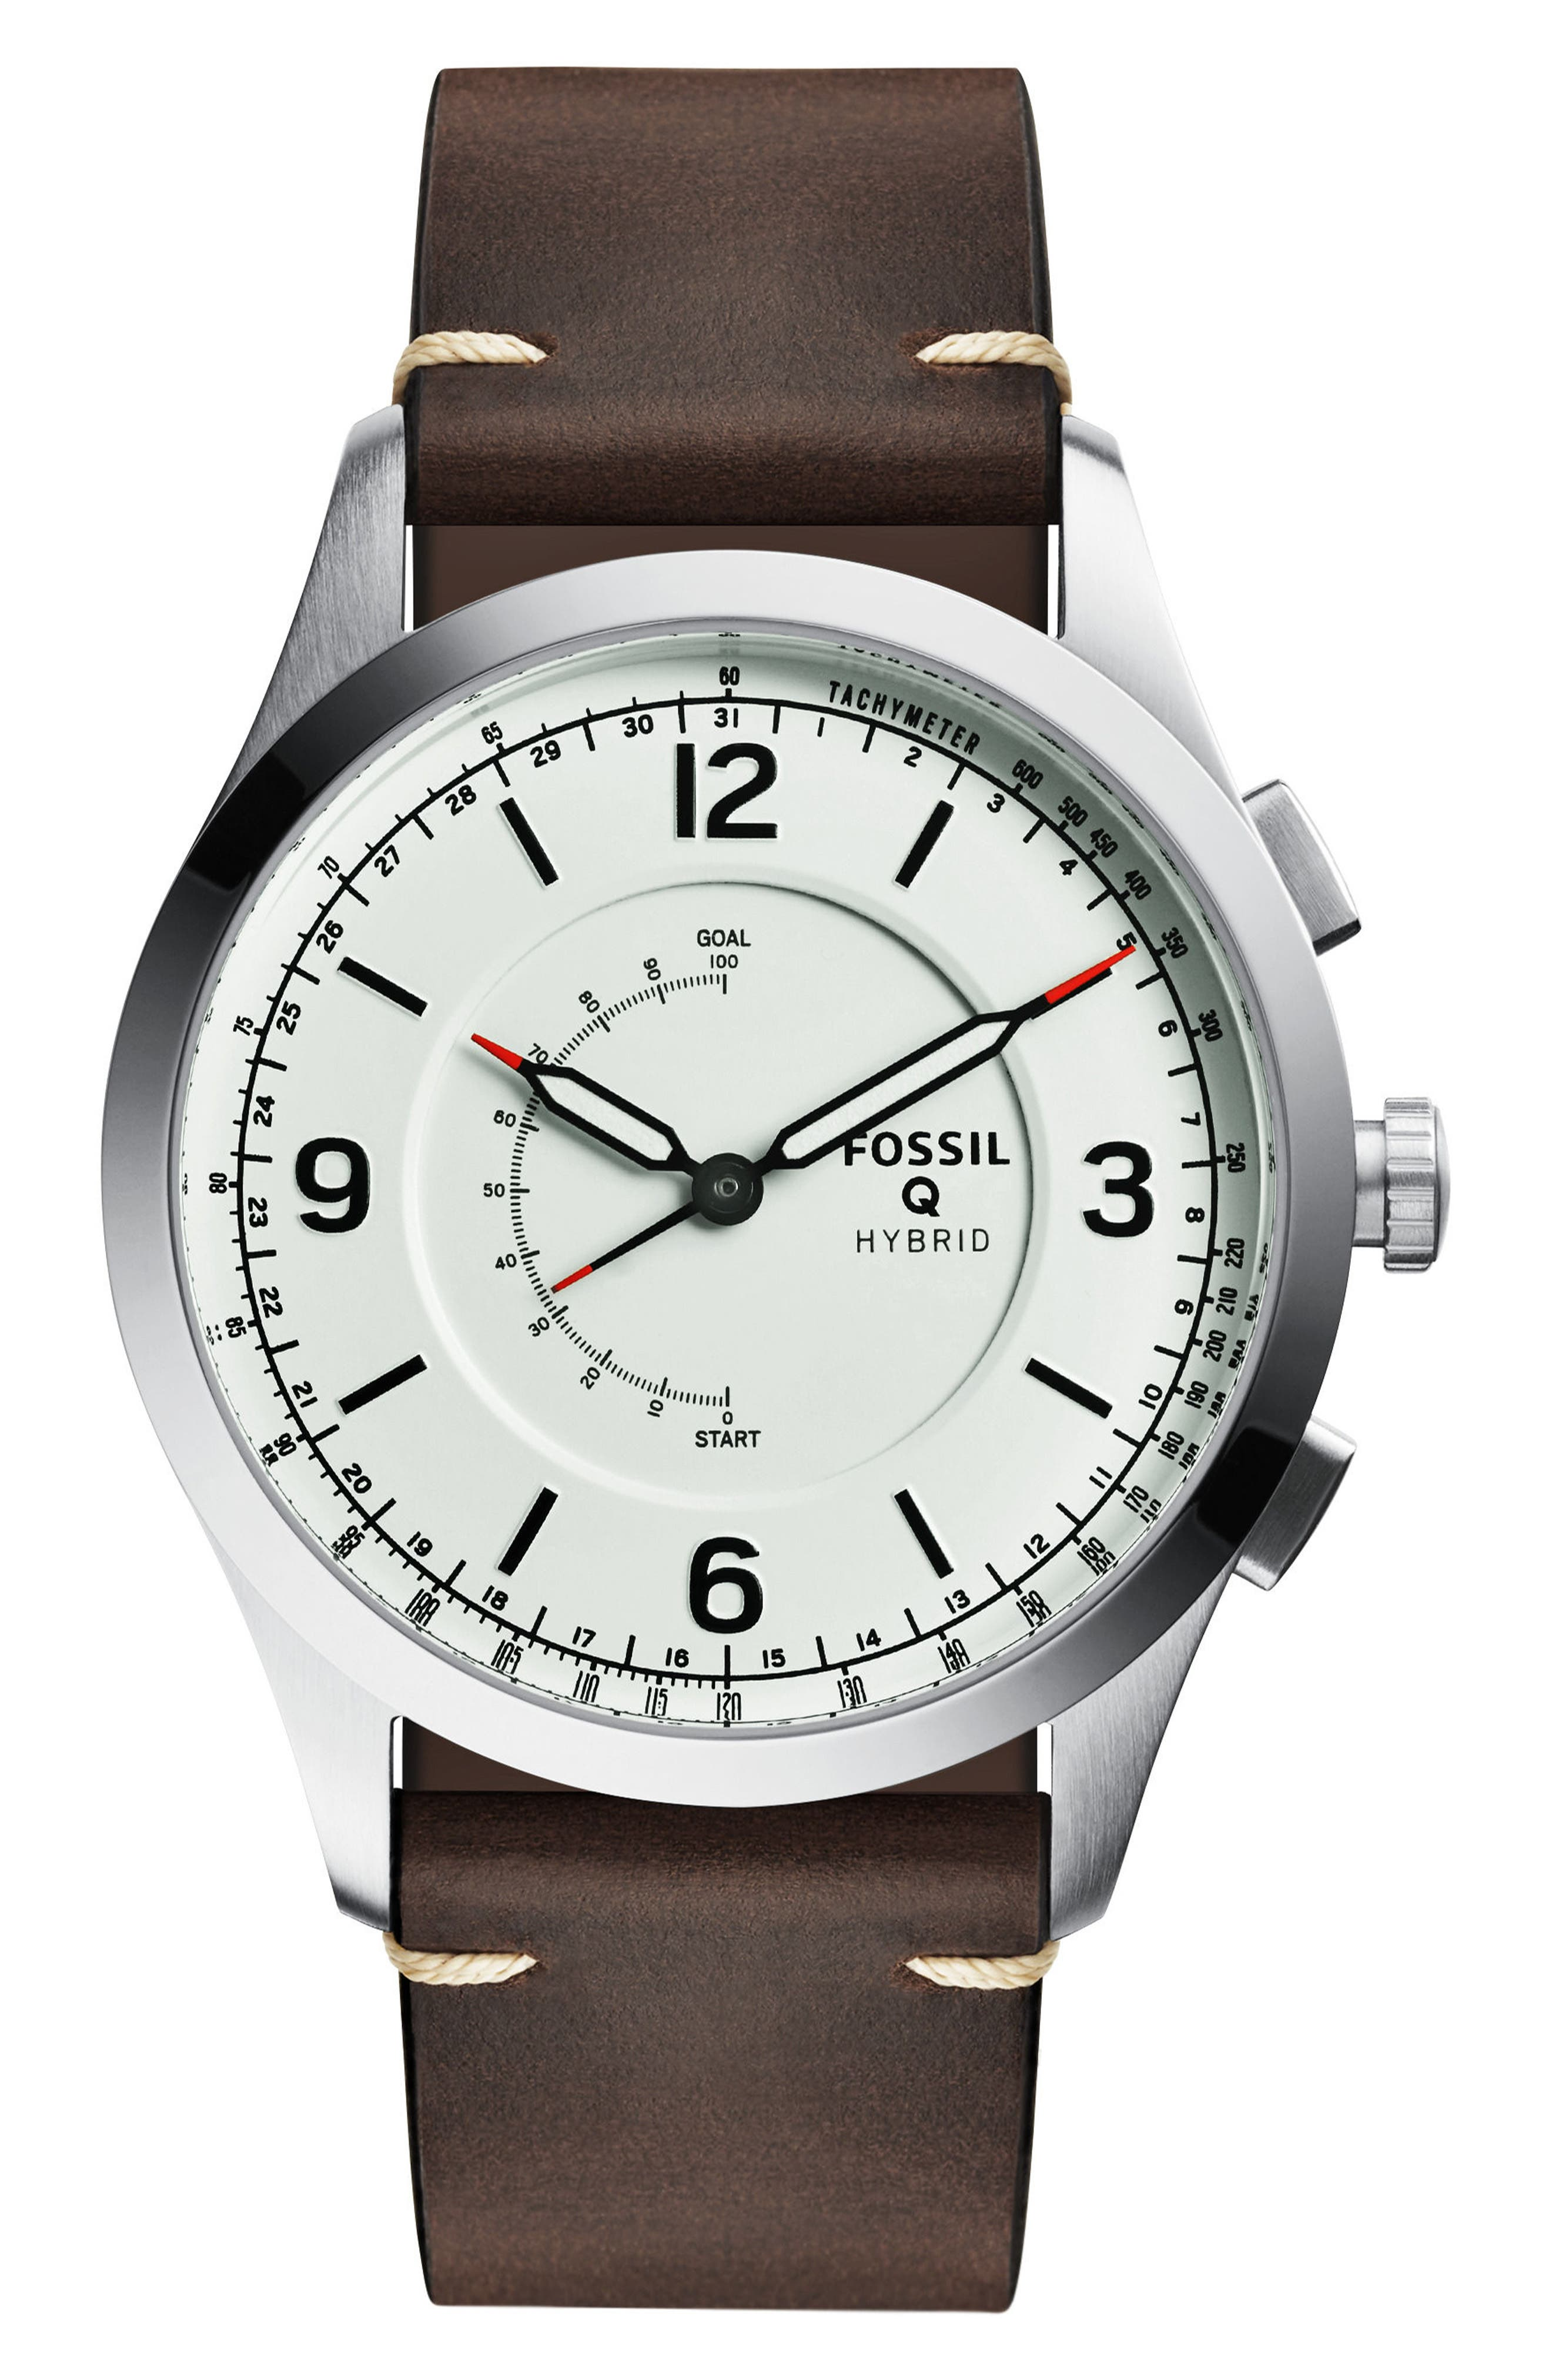 Main Image - Fossil Q Activist Hybrid Leather Strap Watch, 42mm